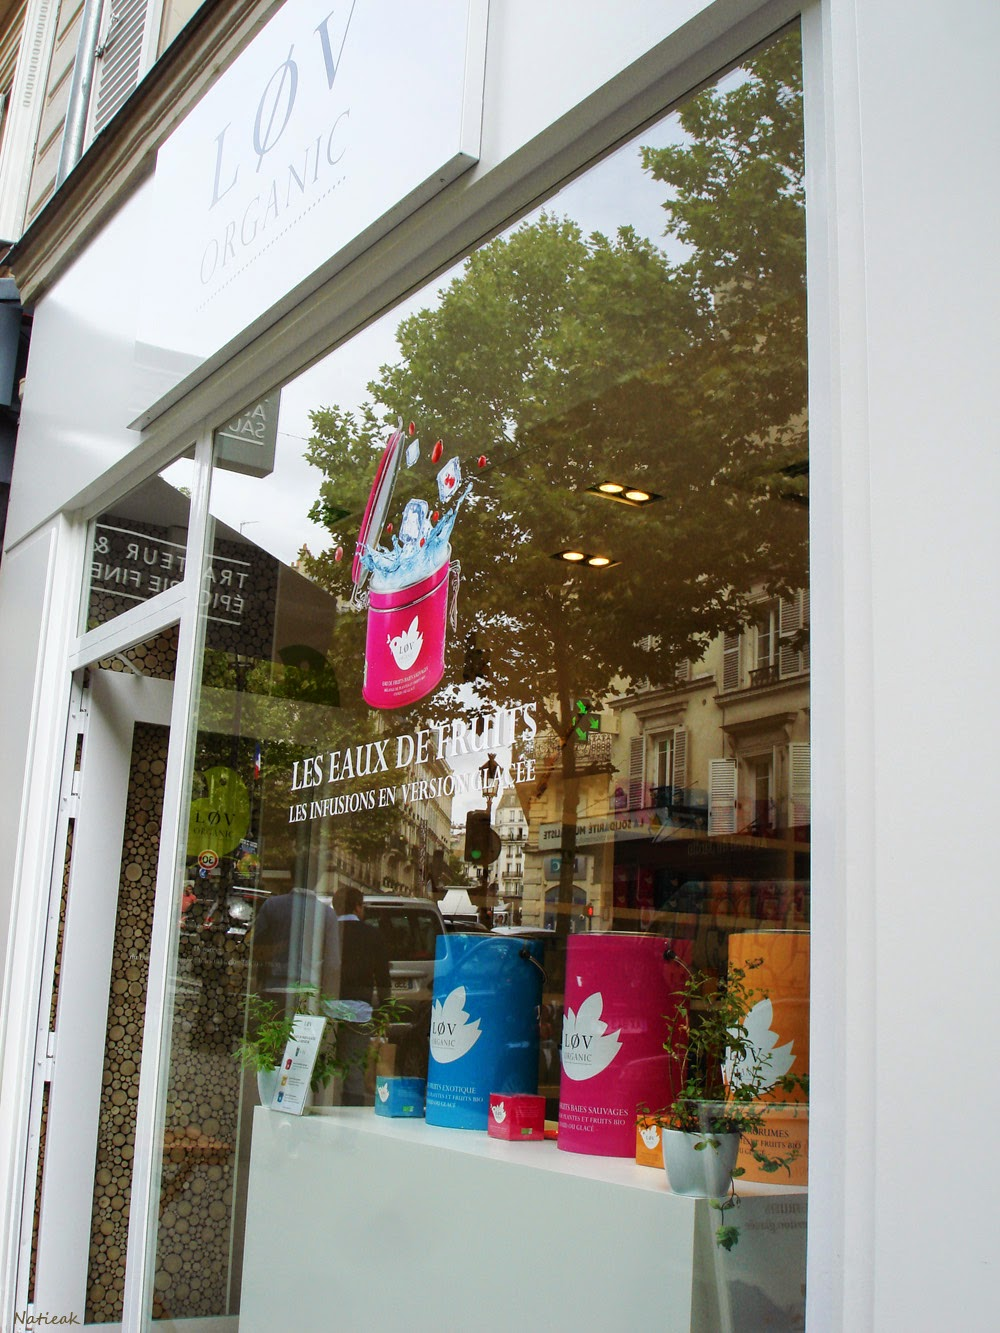 la boutique  Lov Organic du 9eme arrondissement de Paris